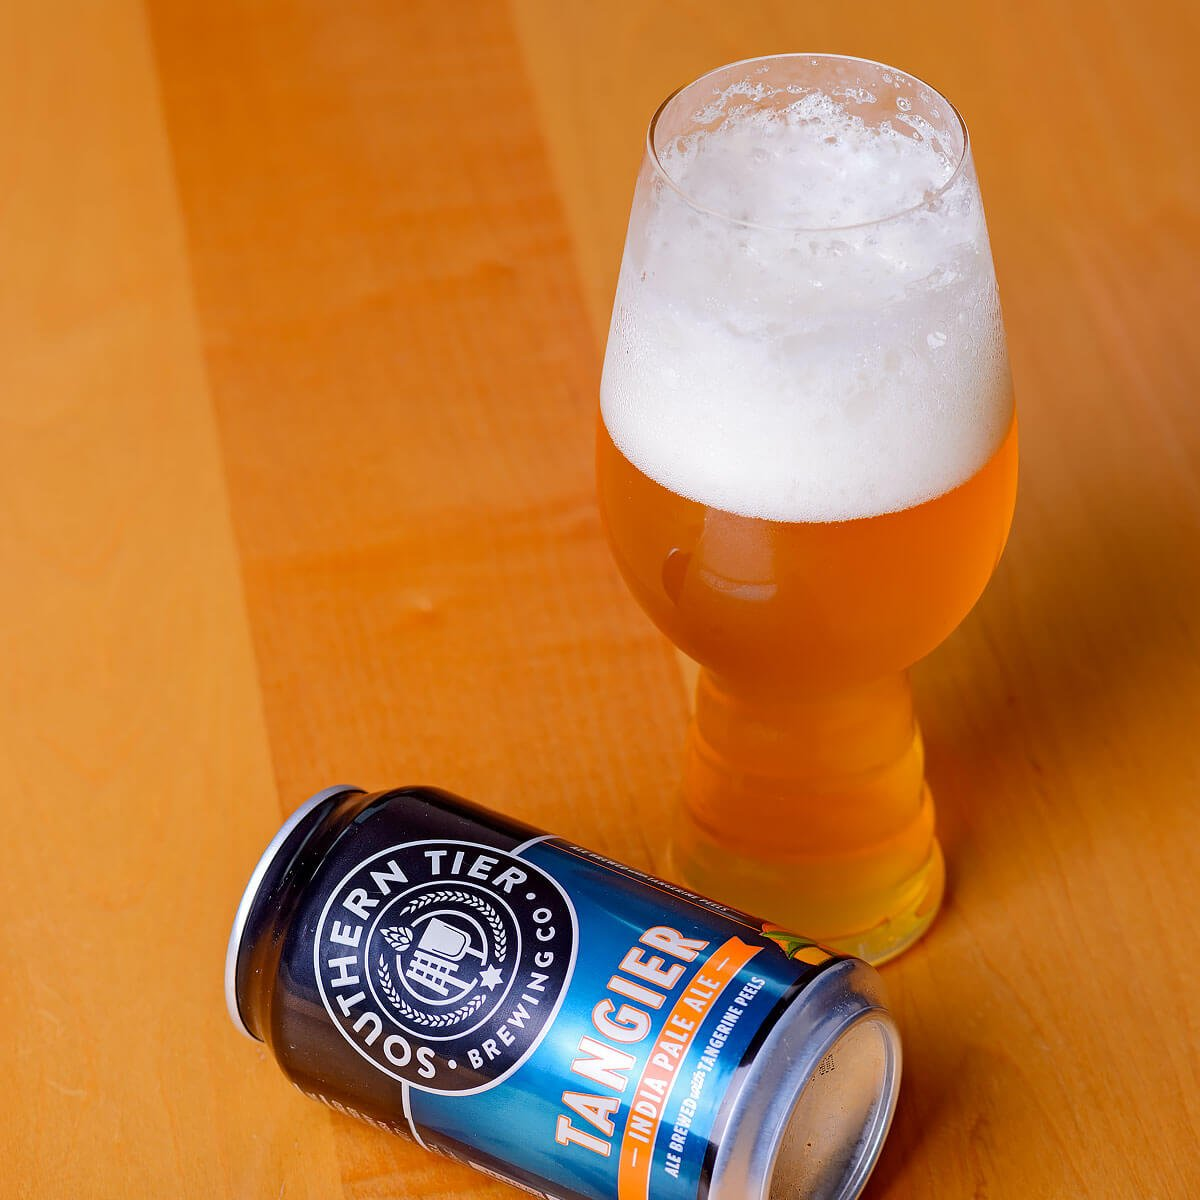 Tangier IPA, a Session IPA by Southern Tier Brewing Co.